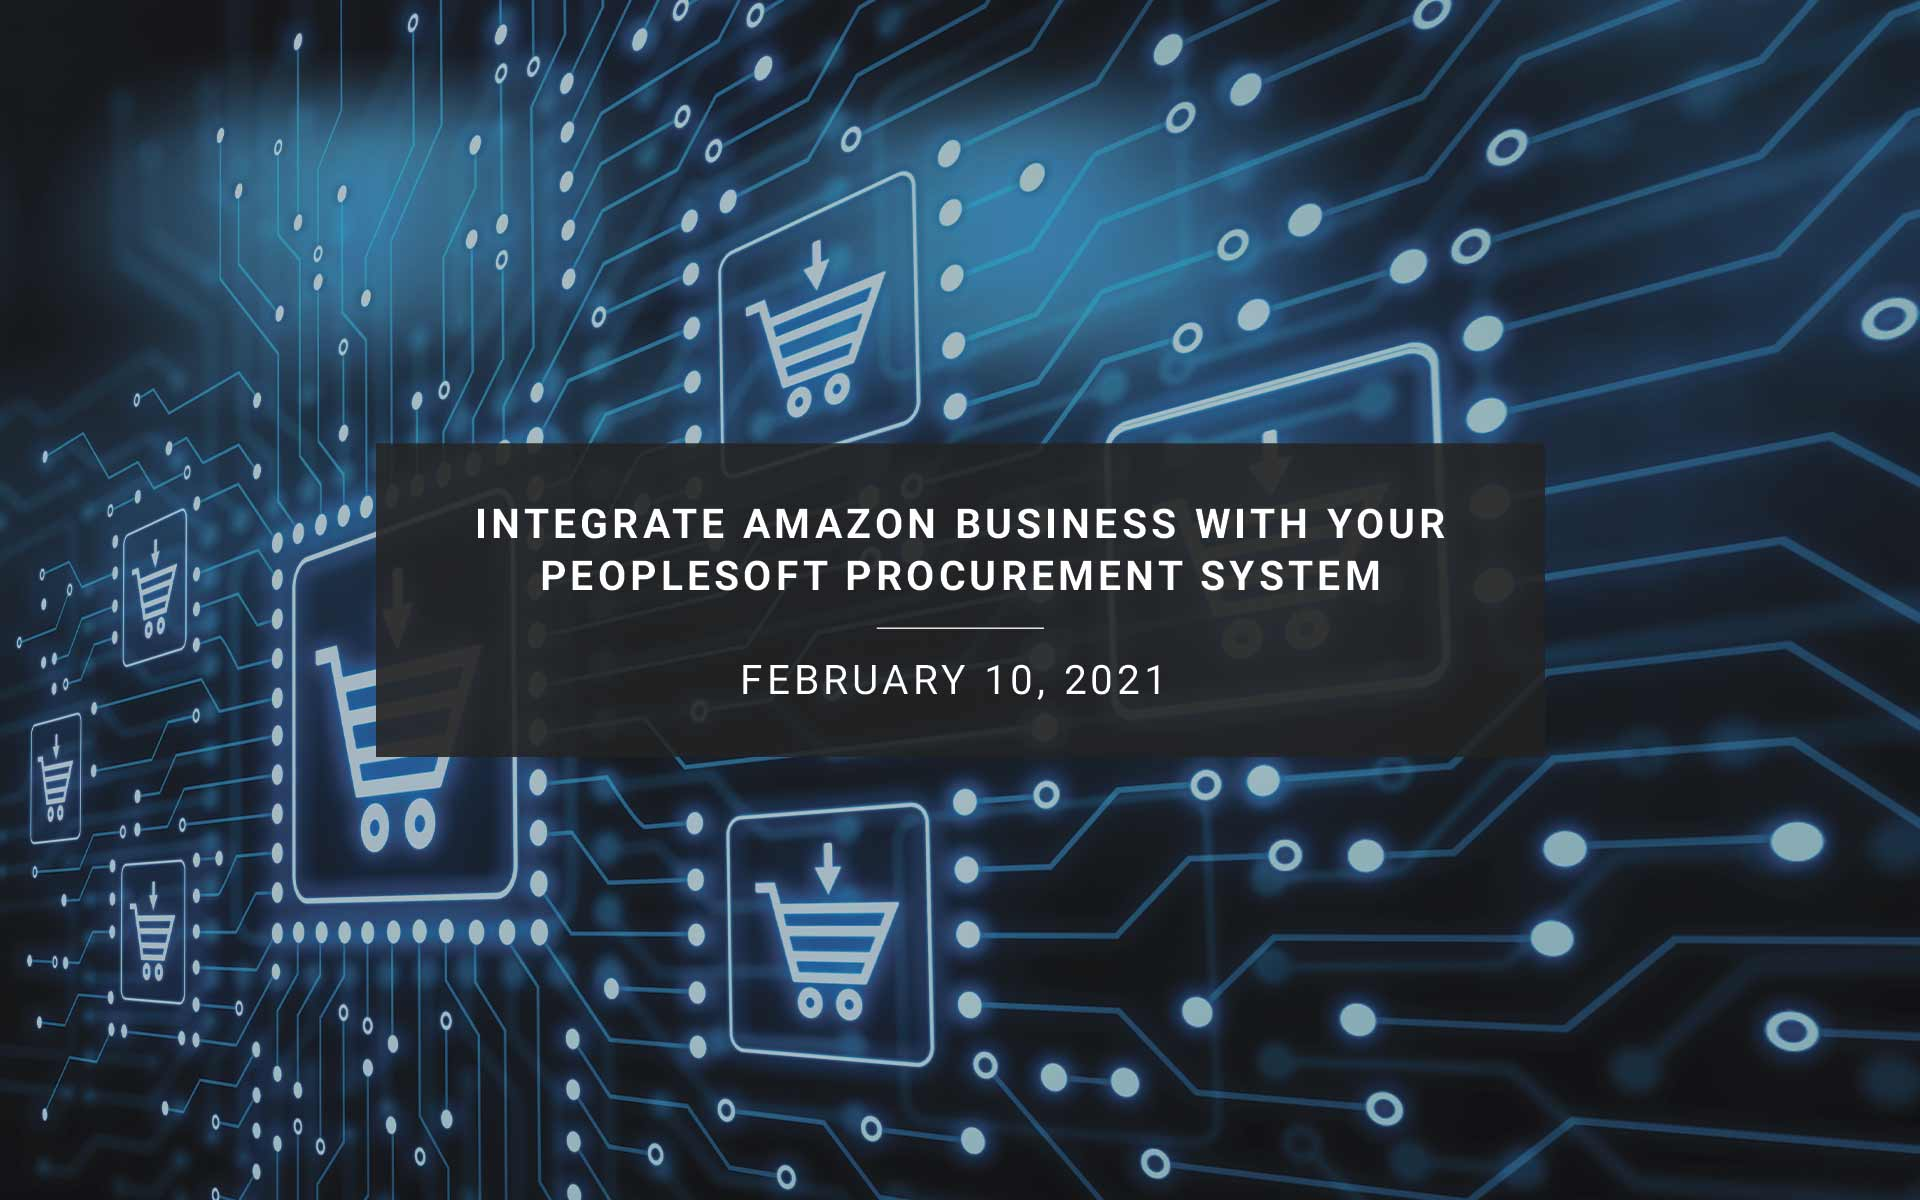 Transform Your Procurement Operations: Integrate Amazon Business With Your PeopleSoft Procurement System | New Resources Consulting